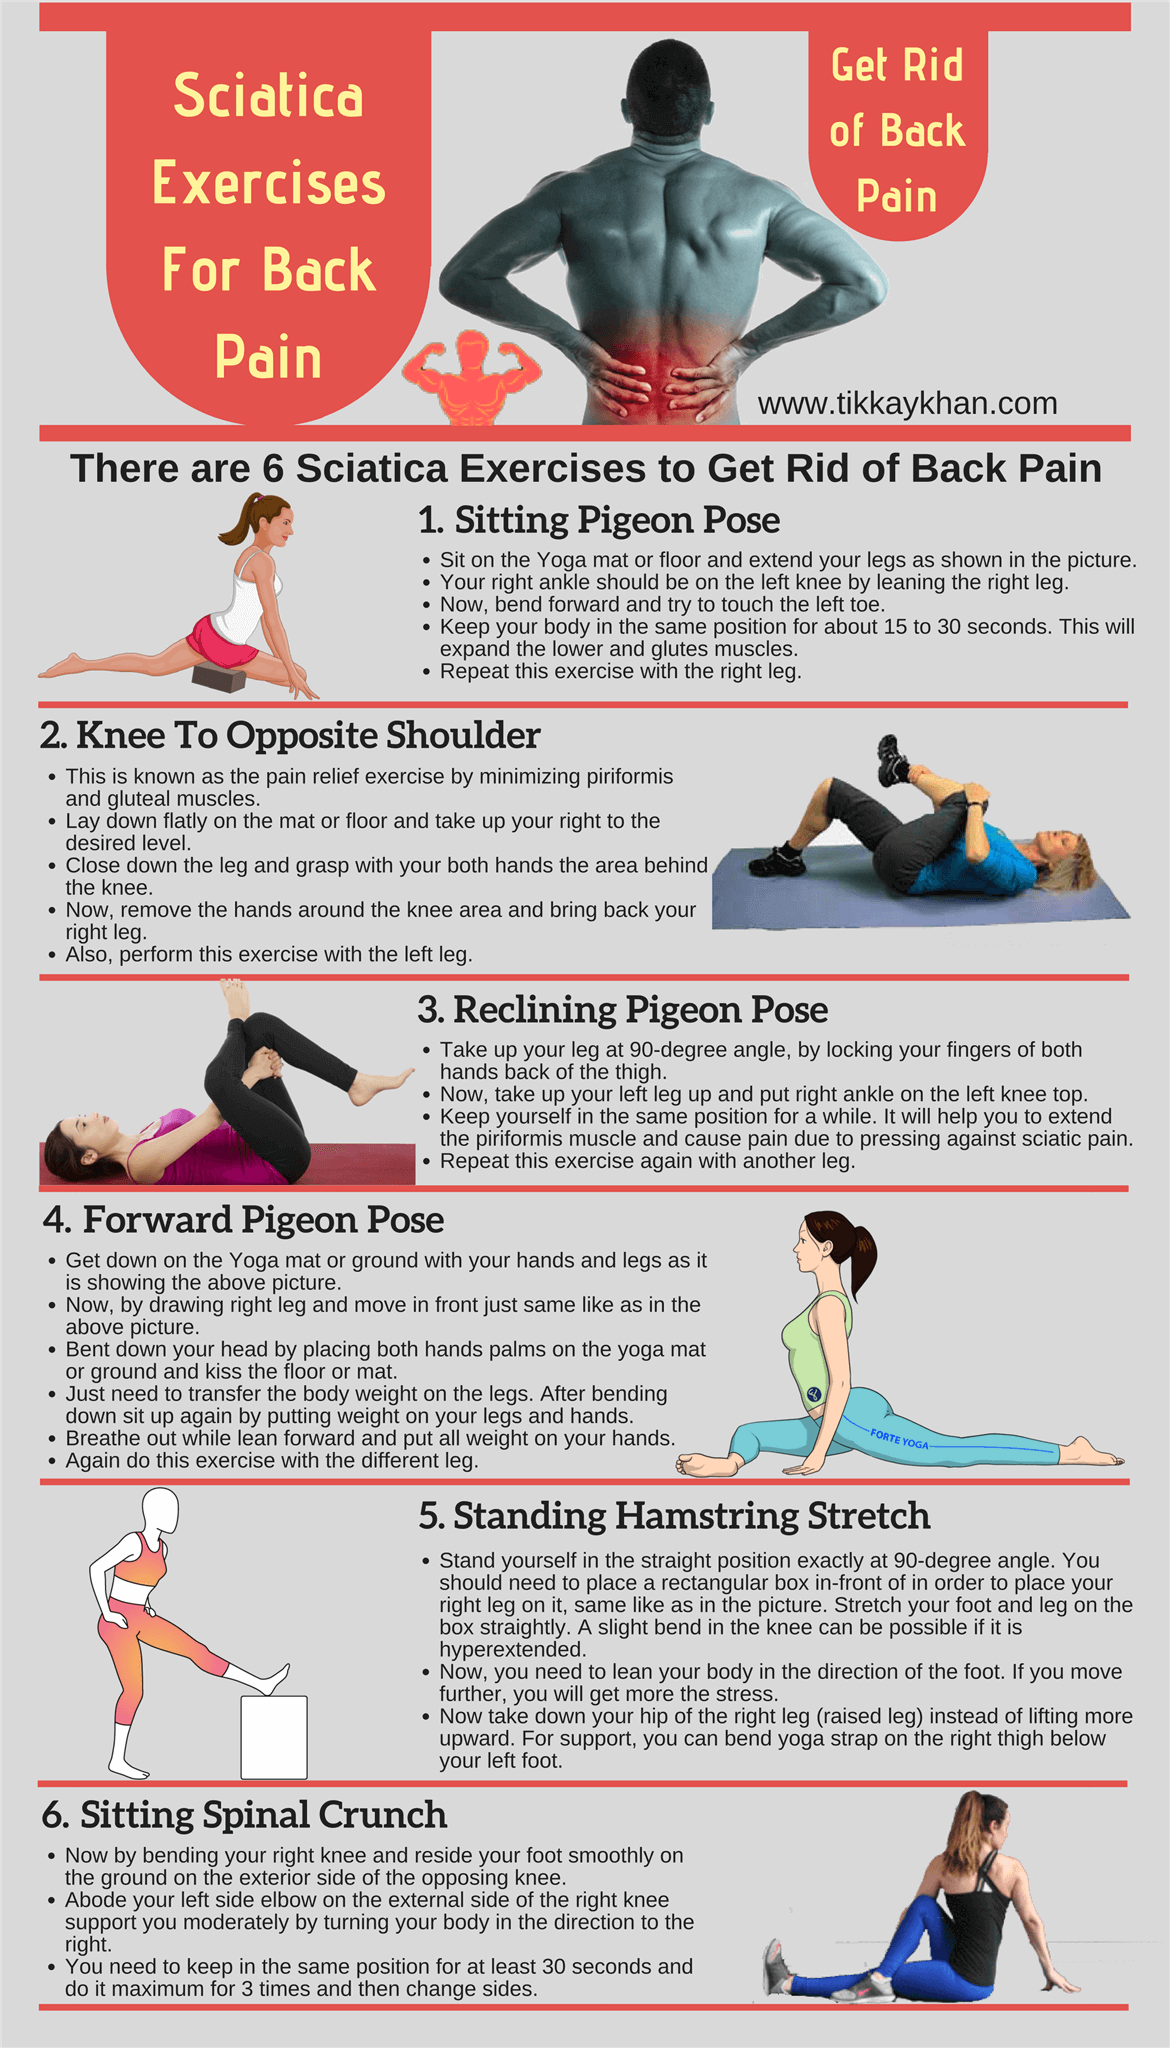 Sciatica Exercises For Back Pain